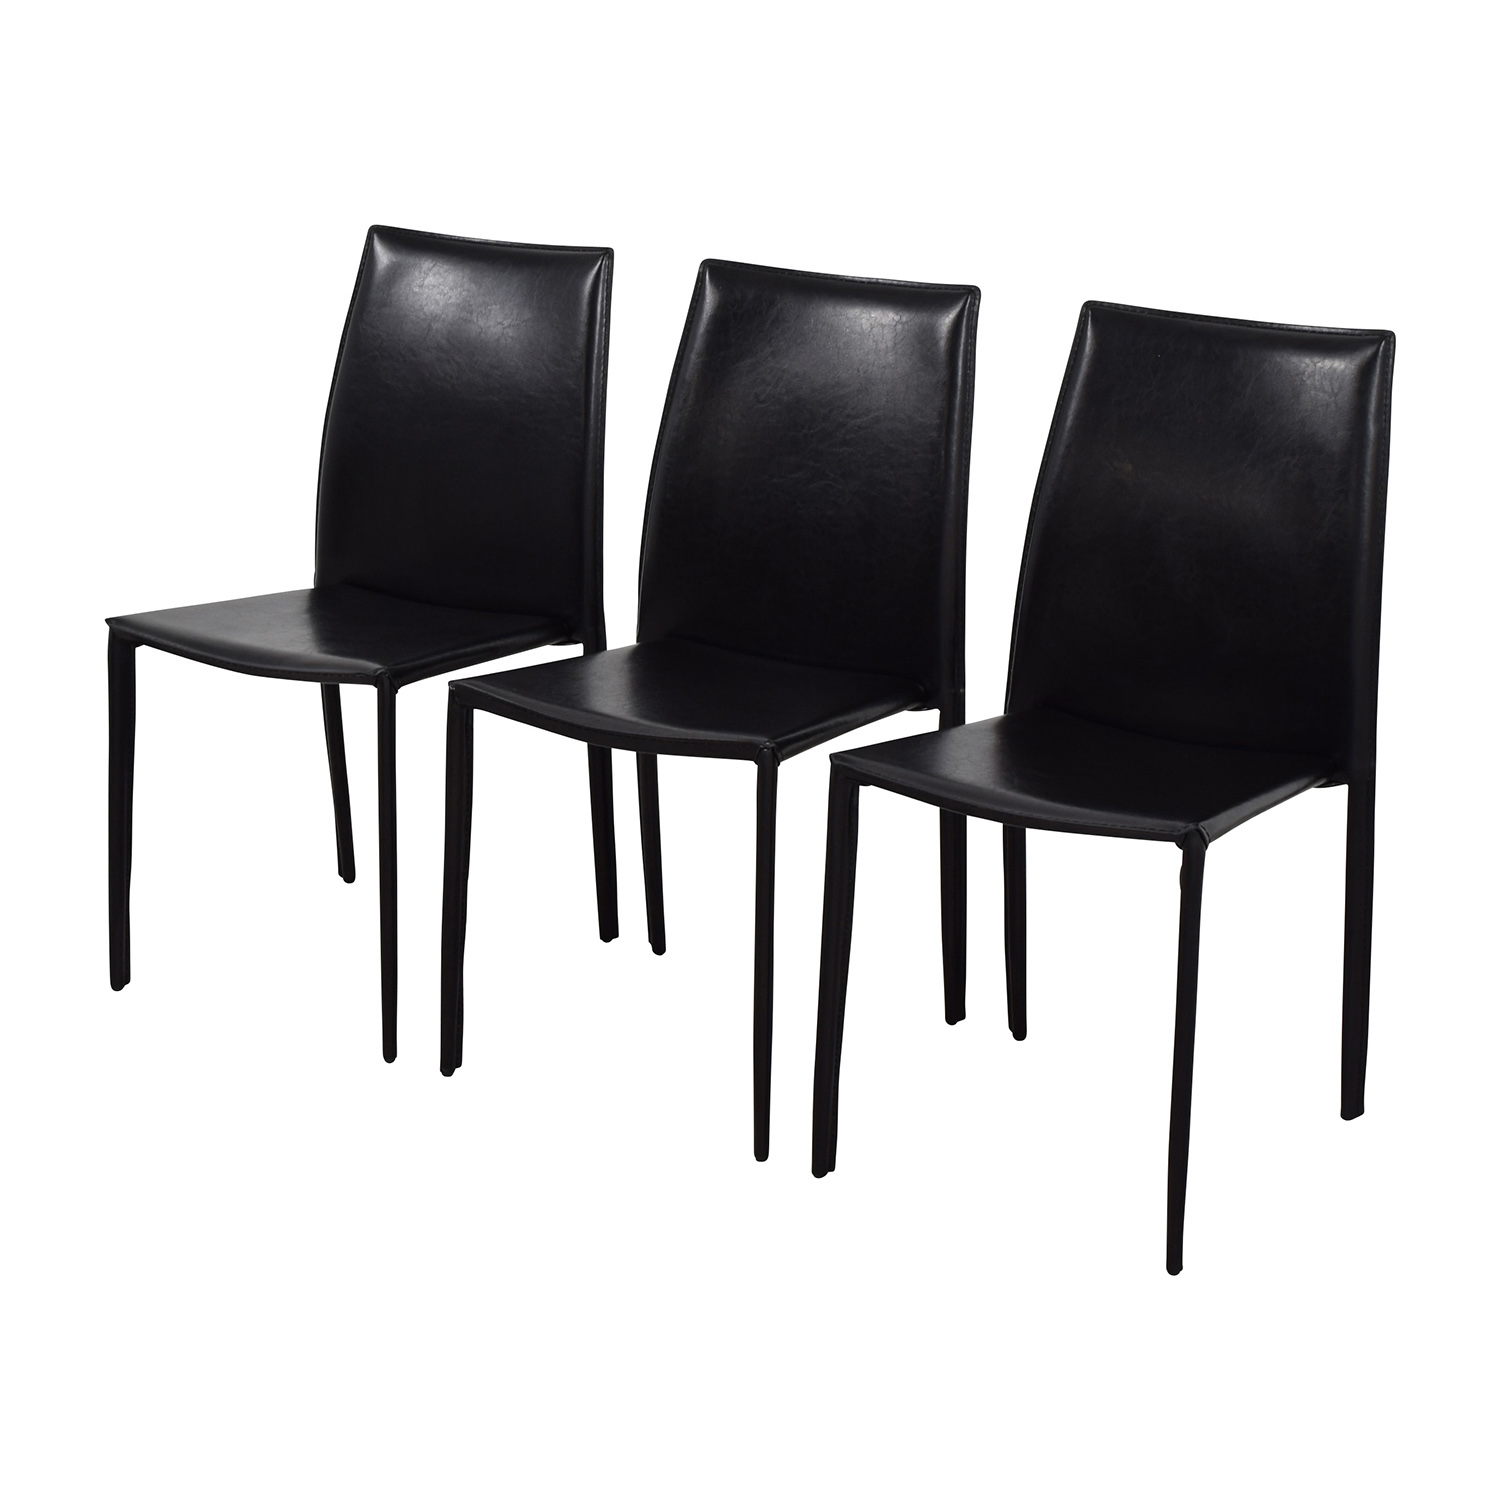 InMod InMod Manta Black Leather Stacking Chairs on sale